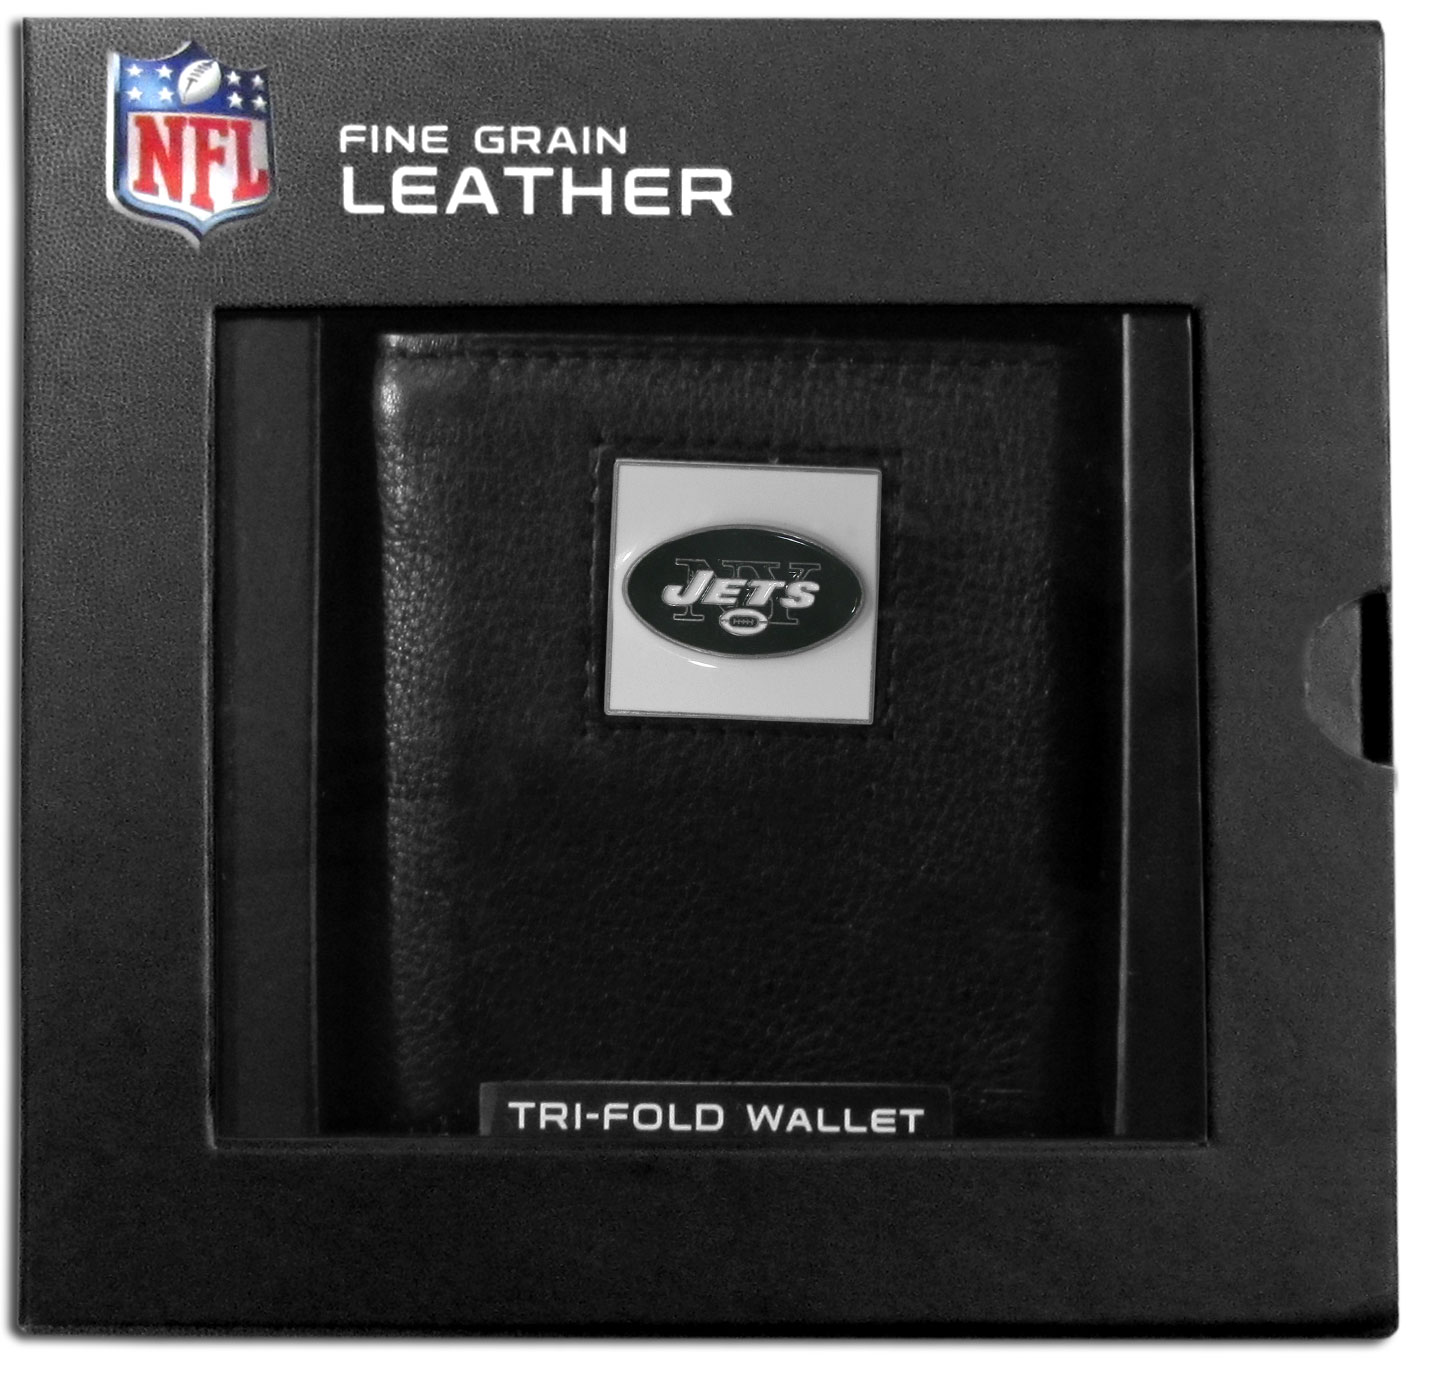 New York Jets Deluxe Leather Tri-fold Wallet Packaged in Gift Box 0783ffde4